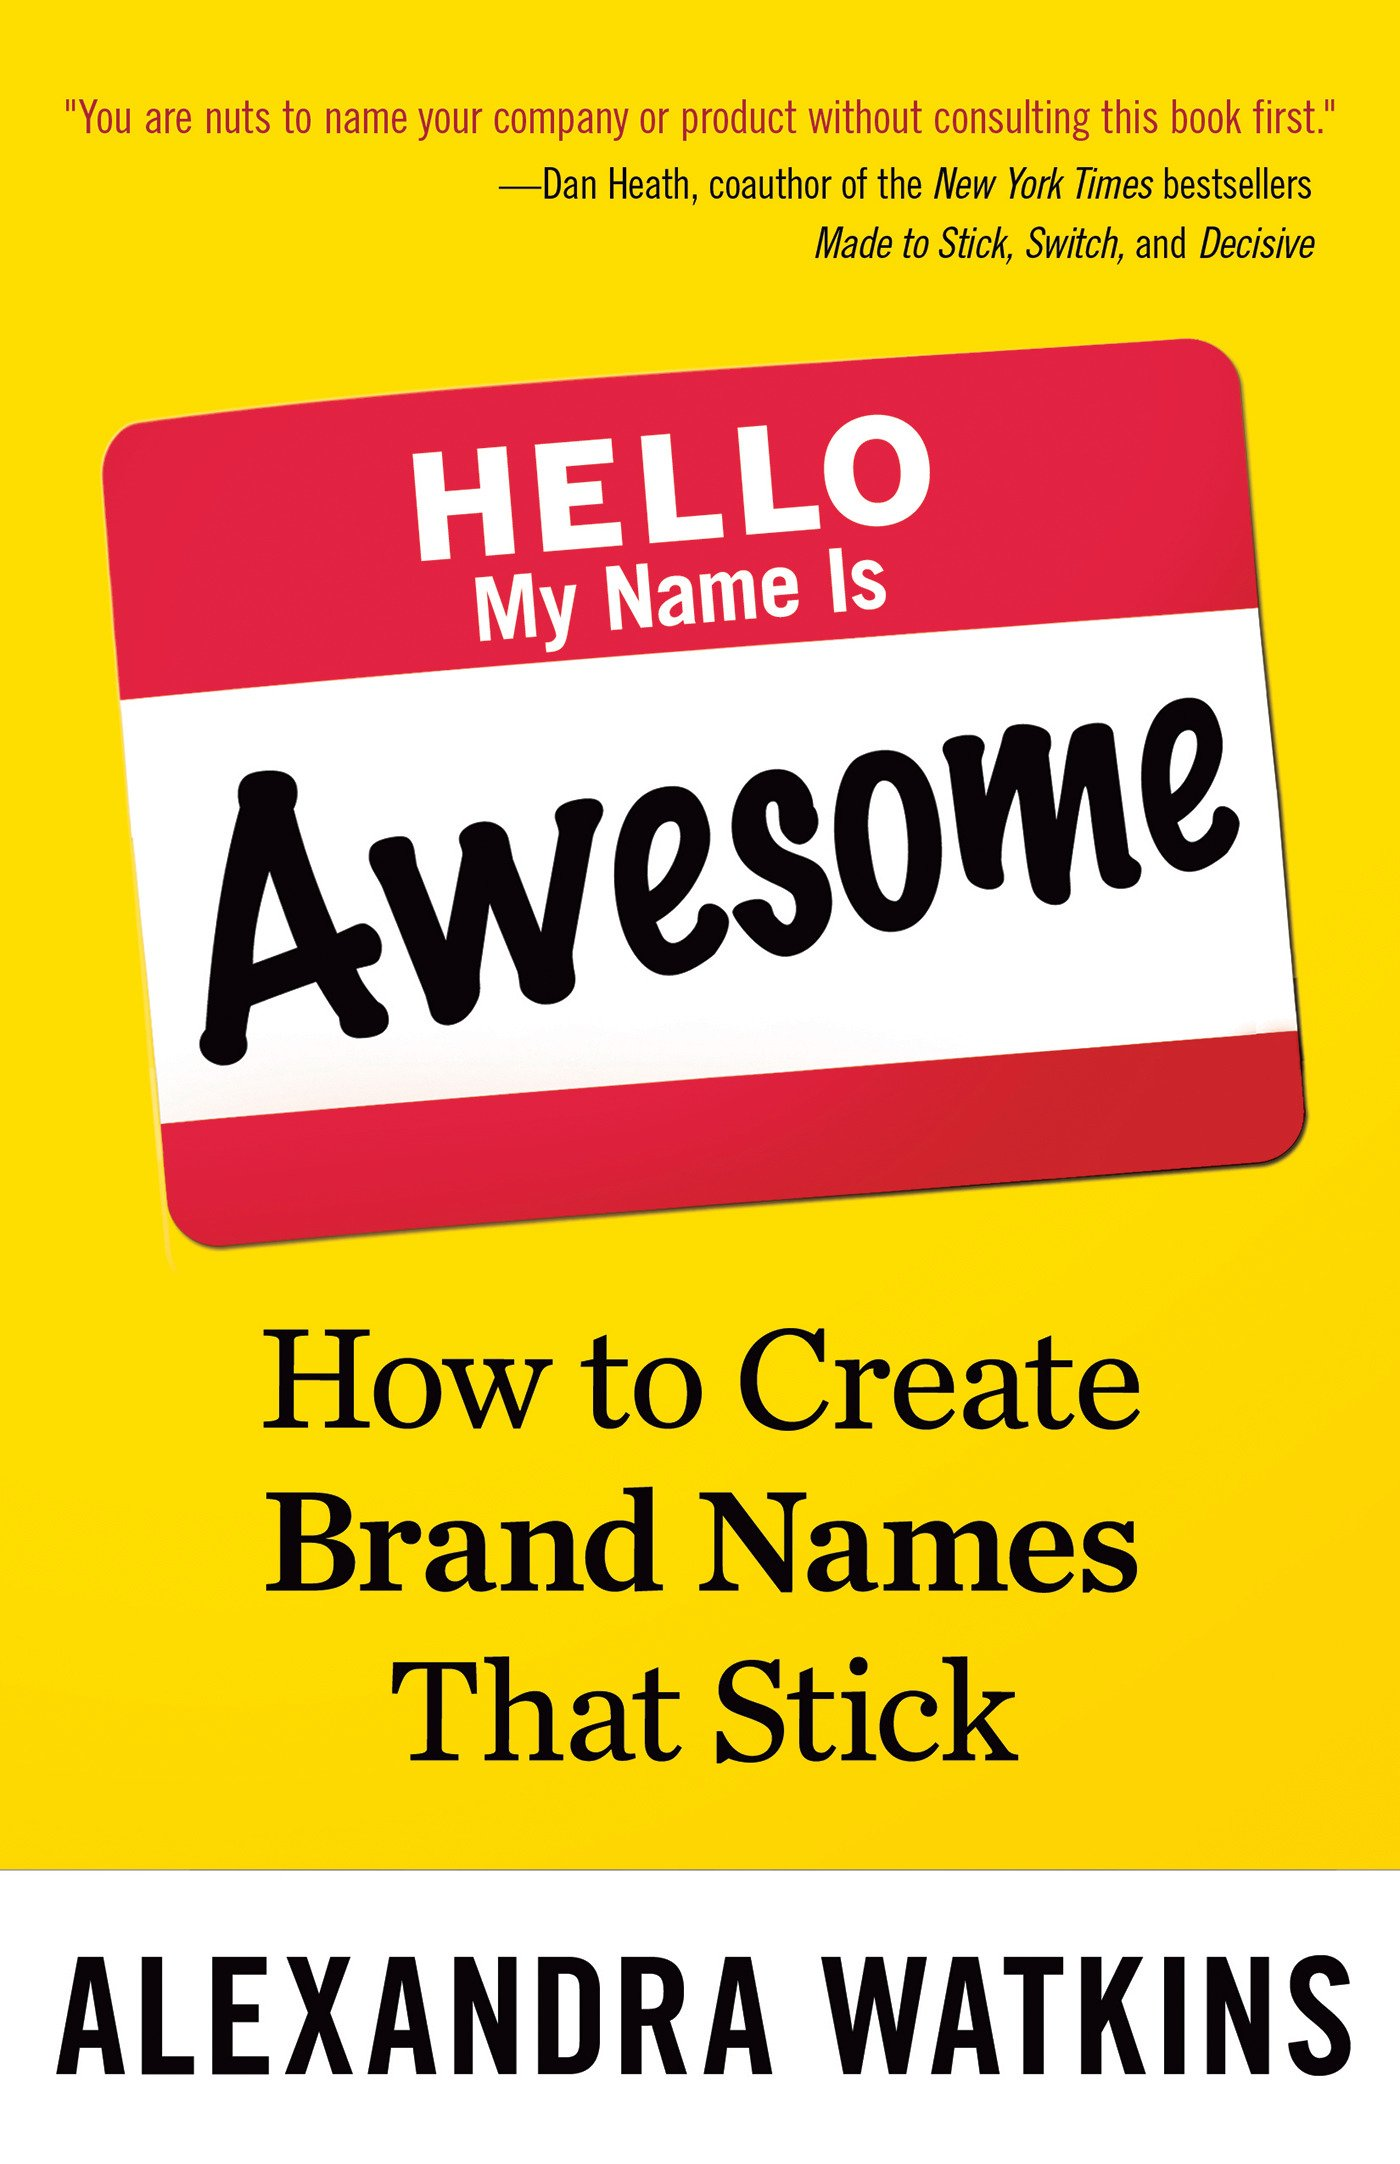 Hello My Name Is Awesome How to Create Brand Names That Stick